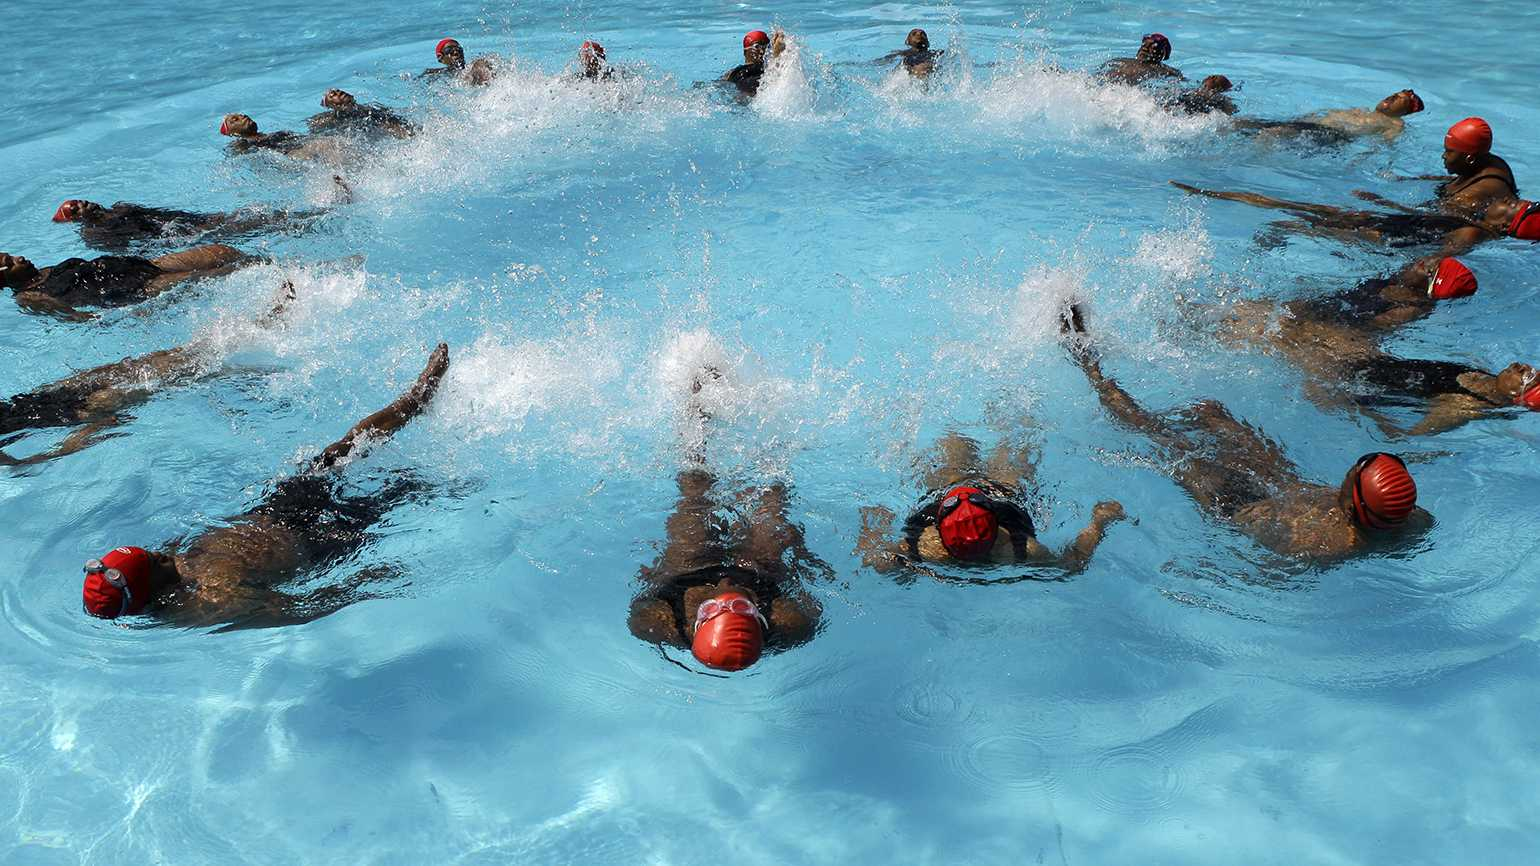 This Senior Synchronized Swim Team Finds Healing in the Water